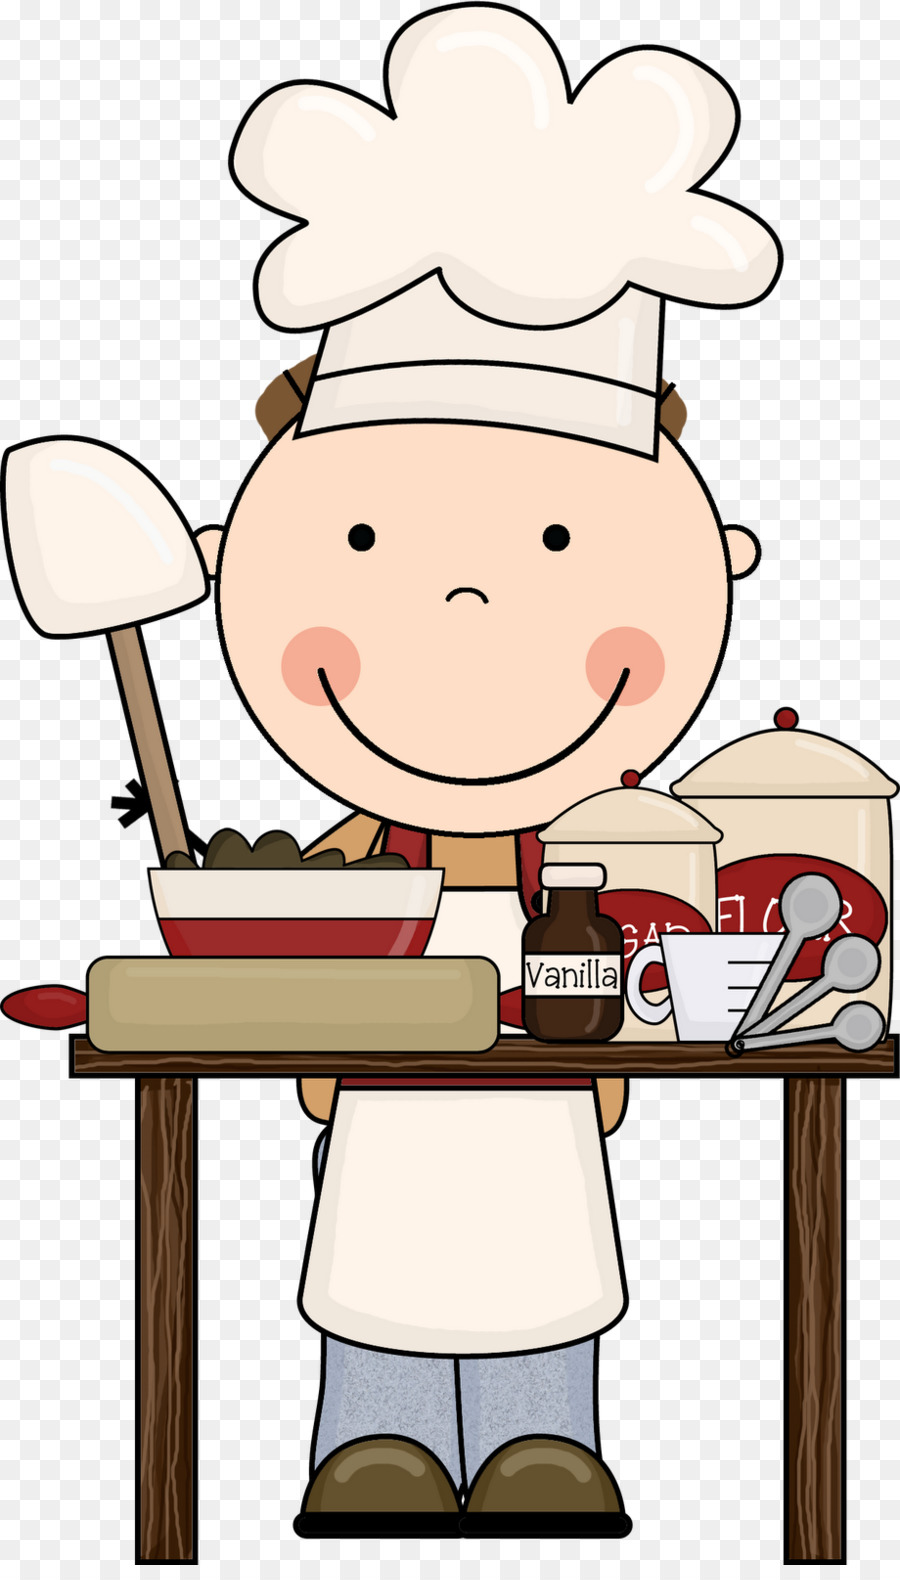 cooking child baking clip art cooking pictures for kids png rh kisspng com kids cooking clip art free Recipe Clip Art